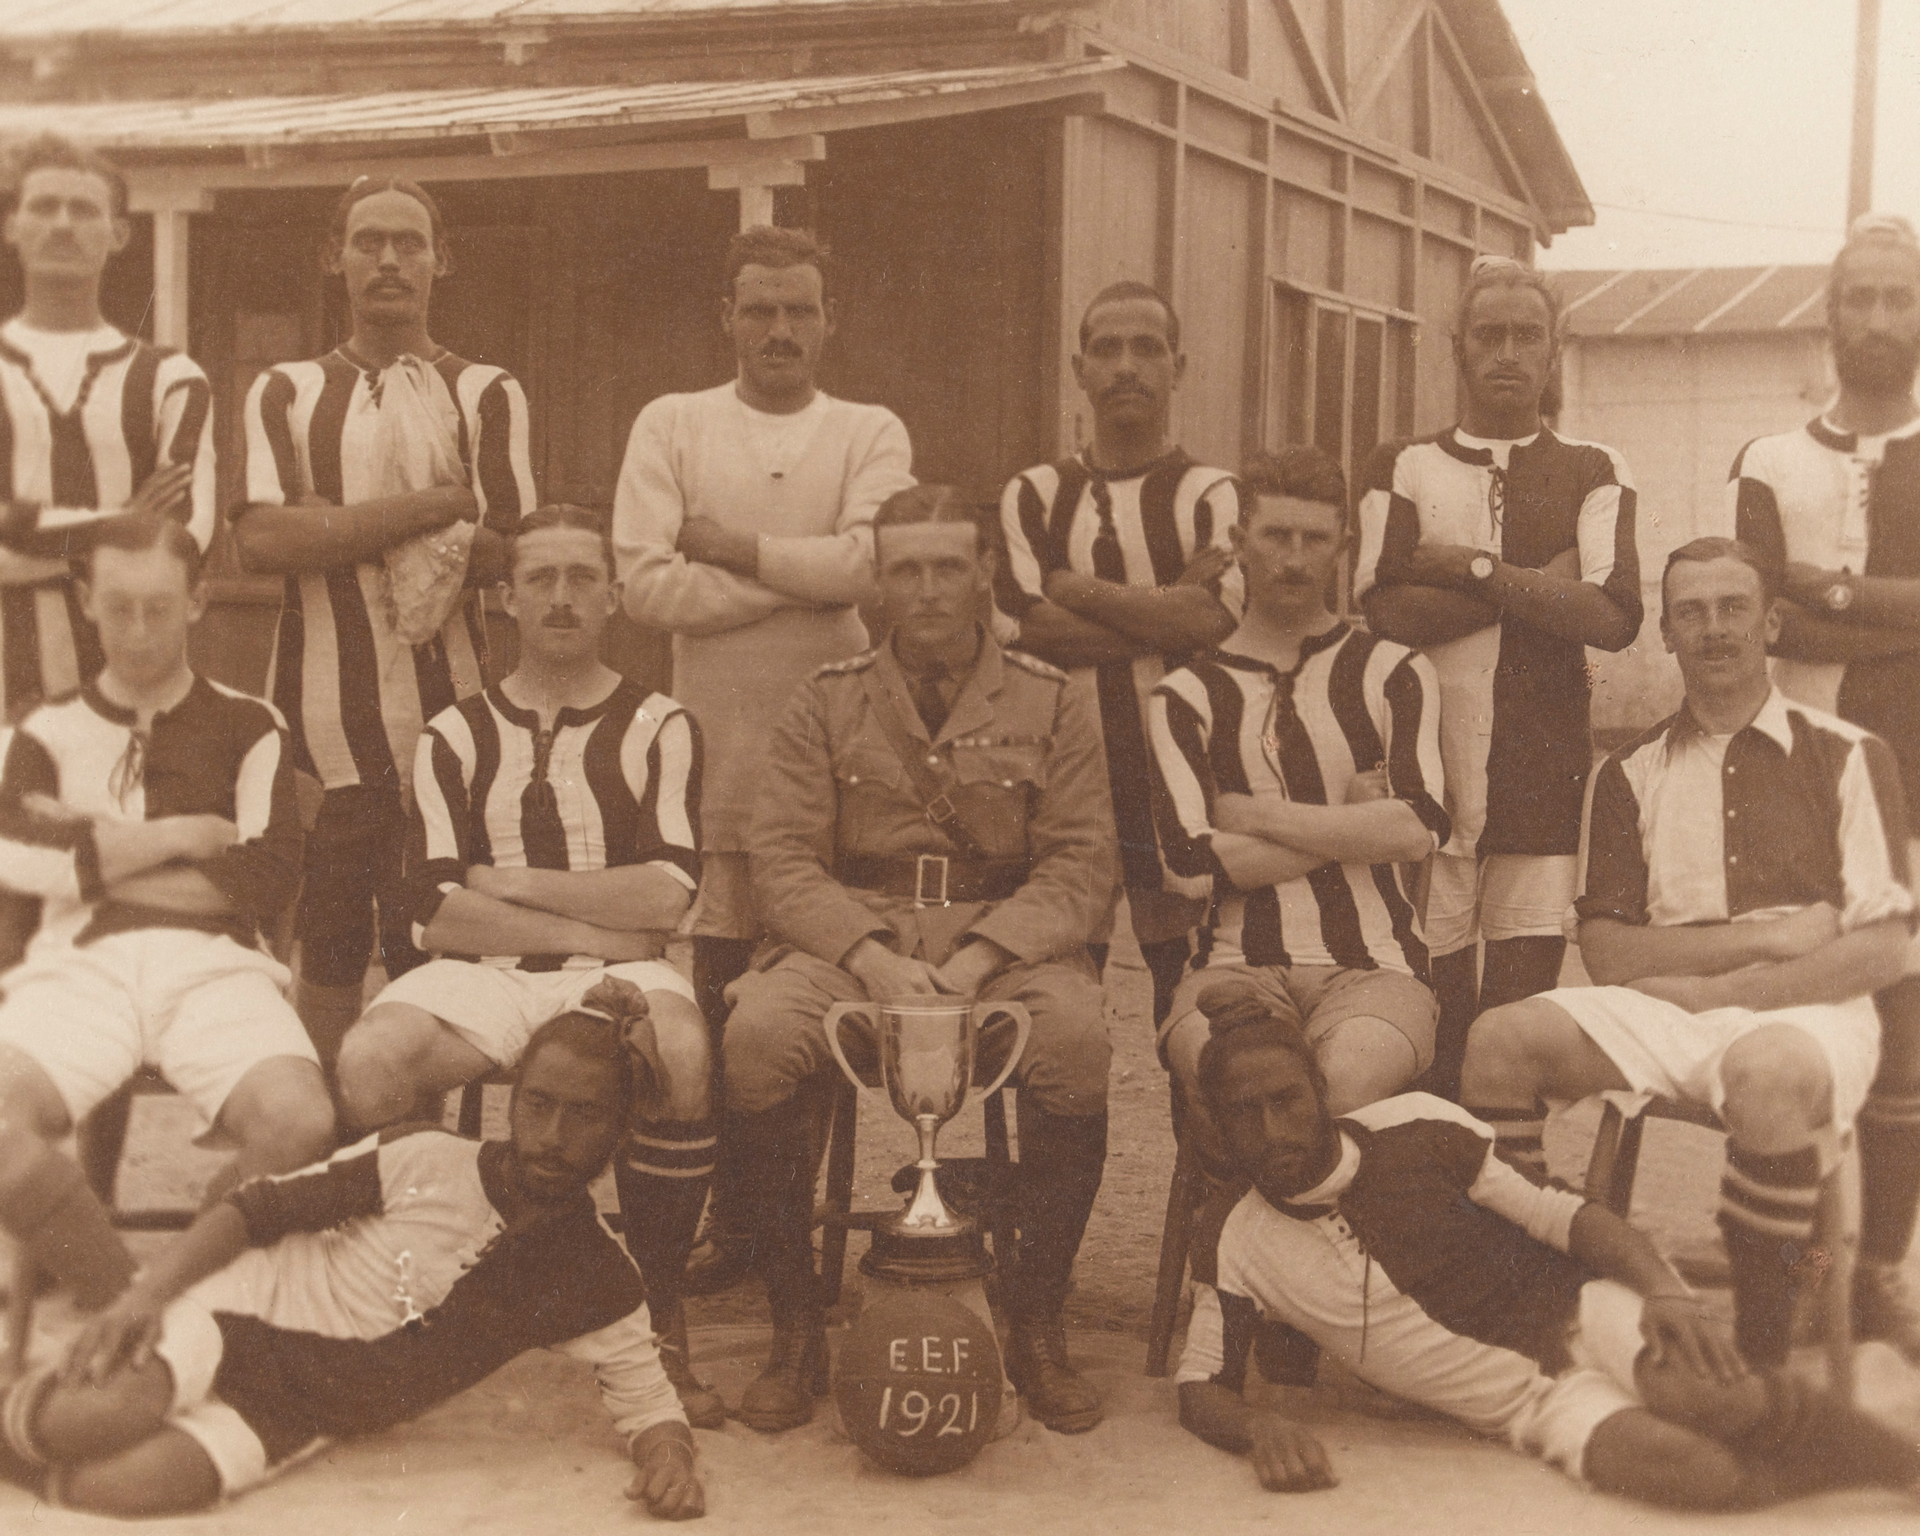 Football team from the 52nd Sikhs (Frontier Force), 1921